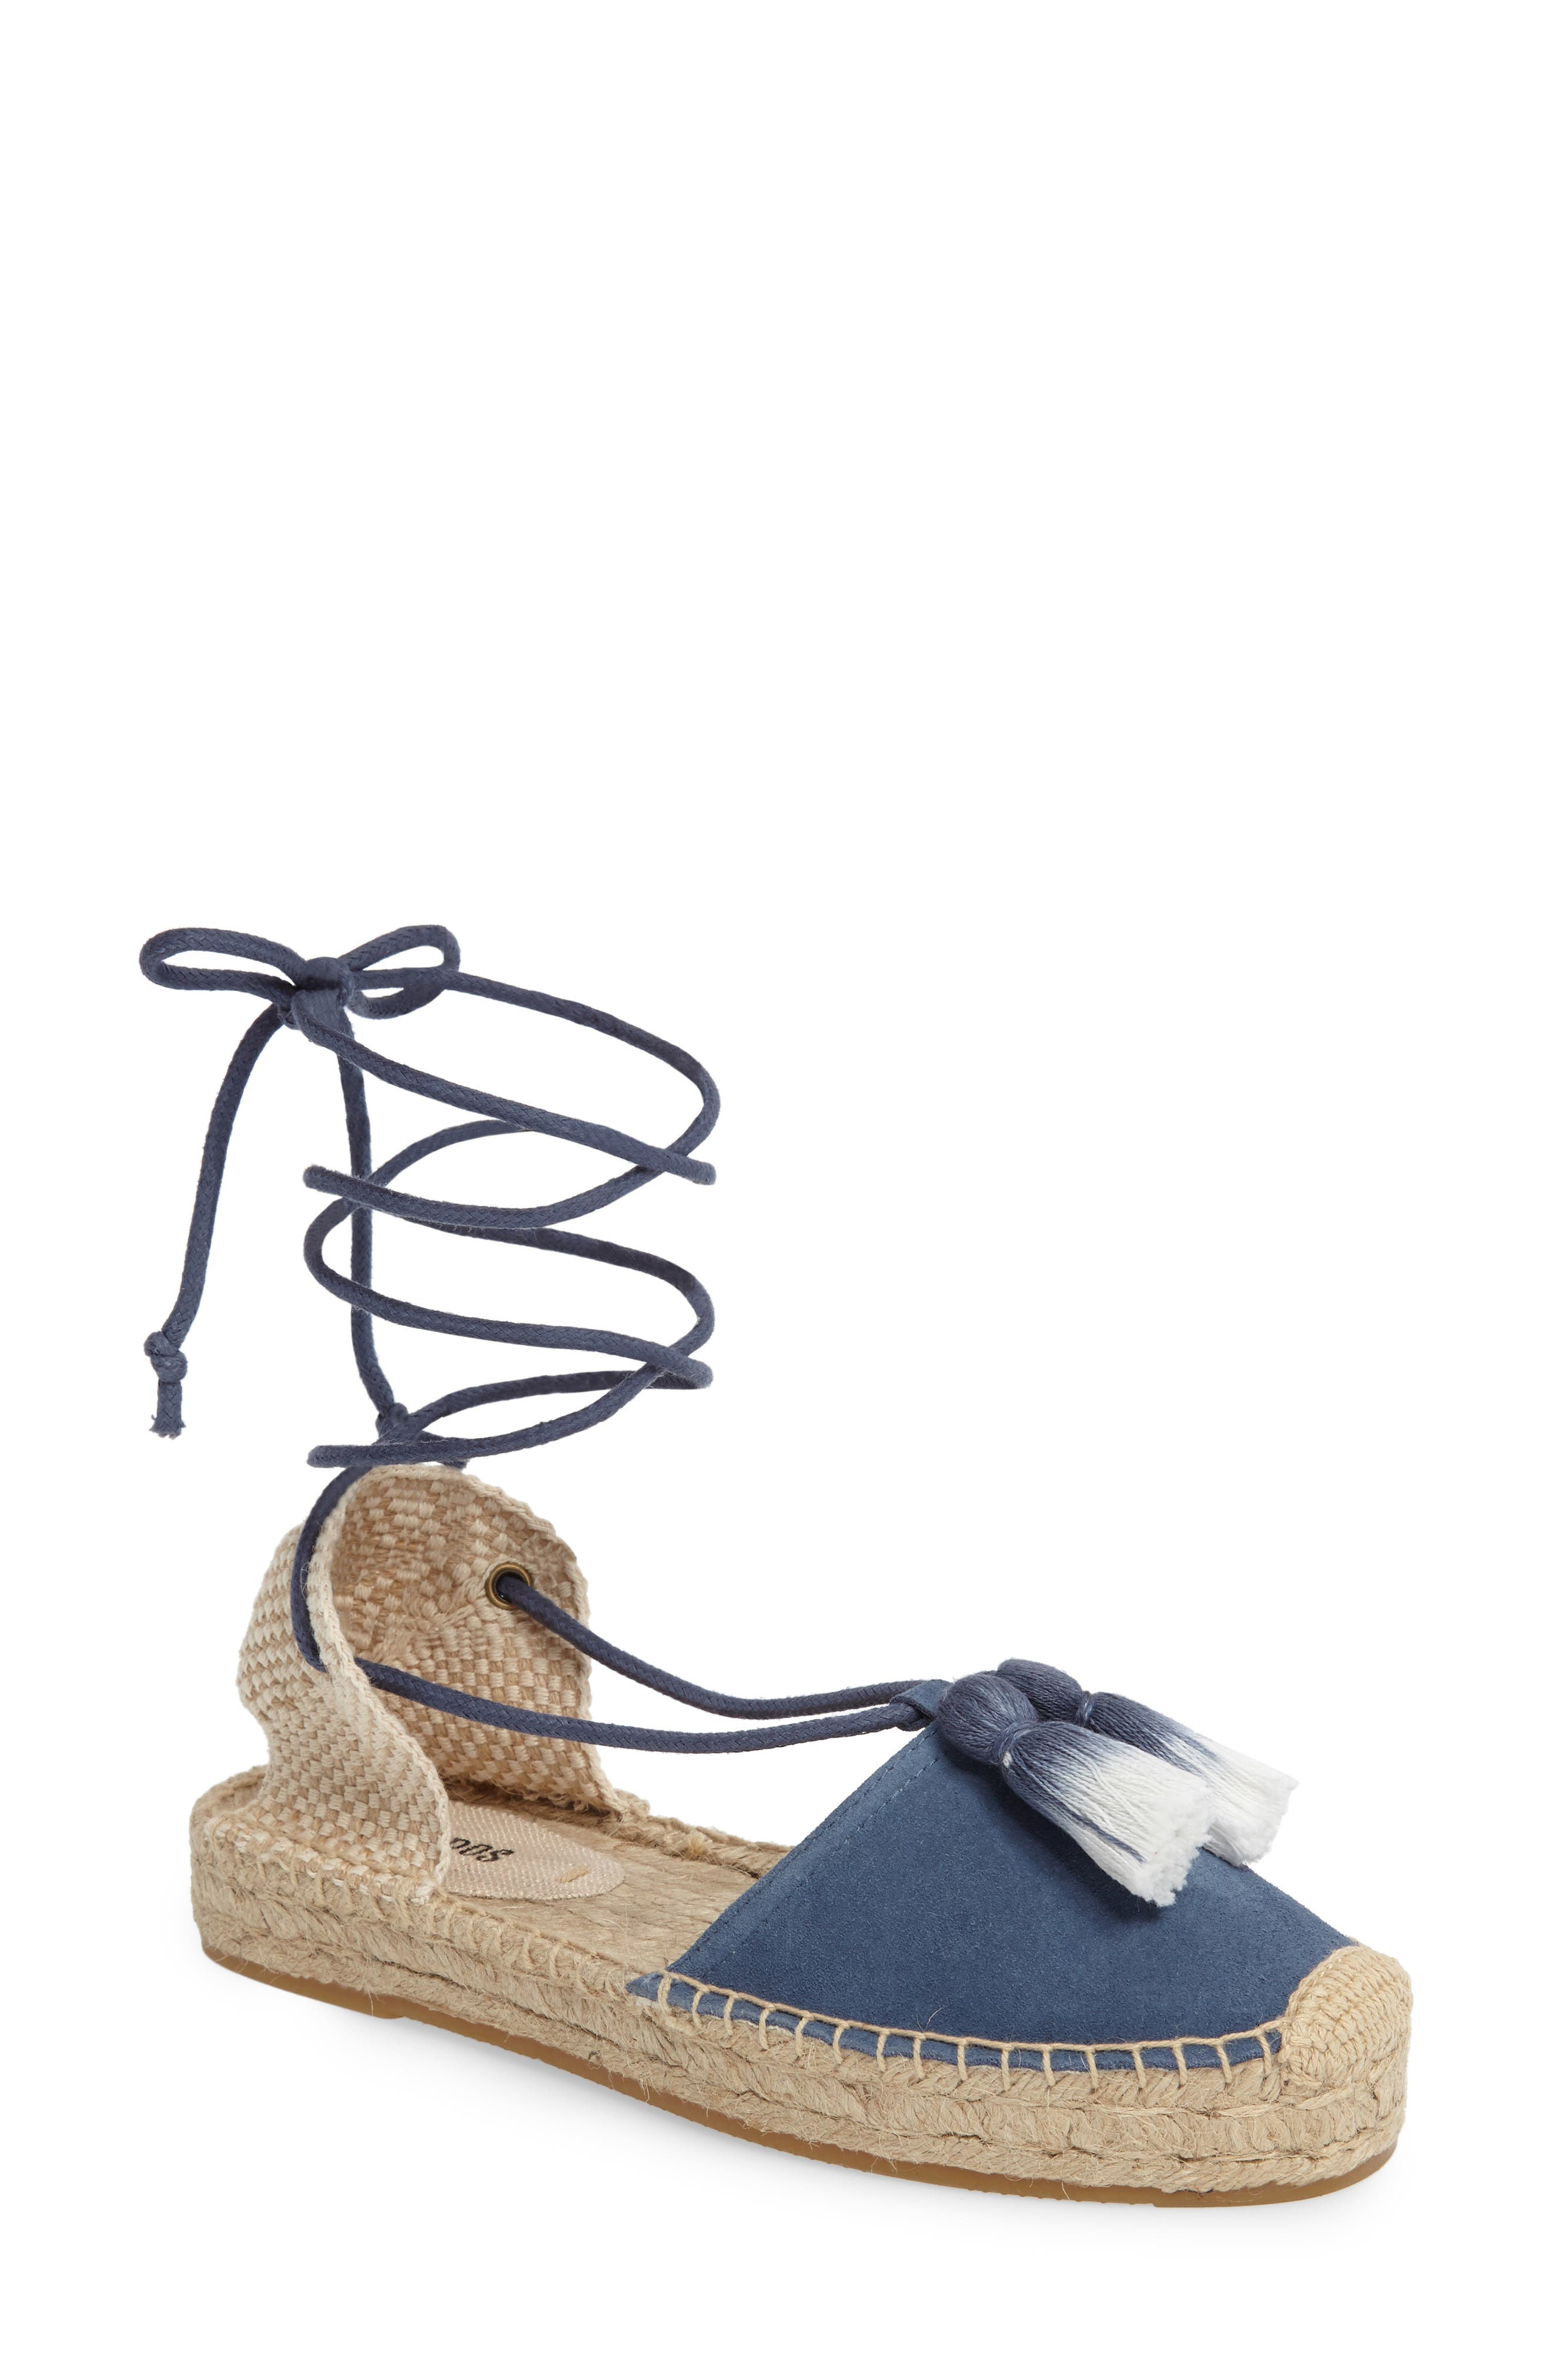 Soludos Tassel Lace-Up Espadrille (Women)